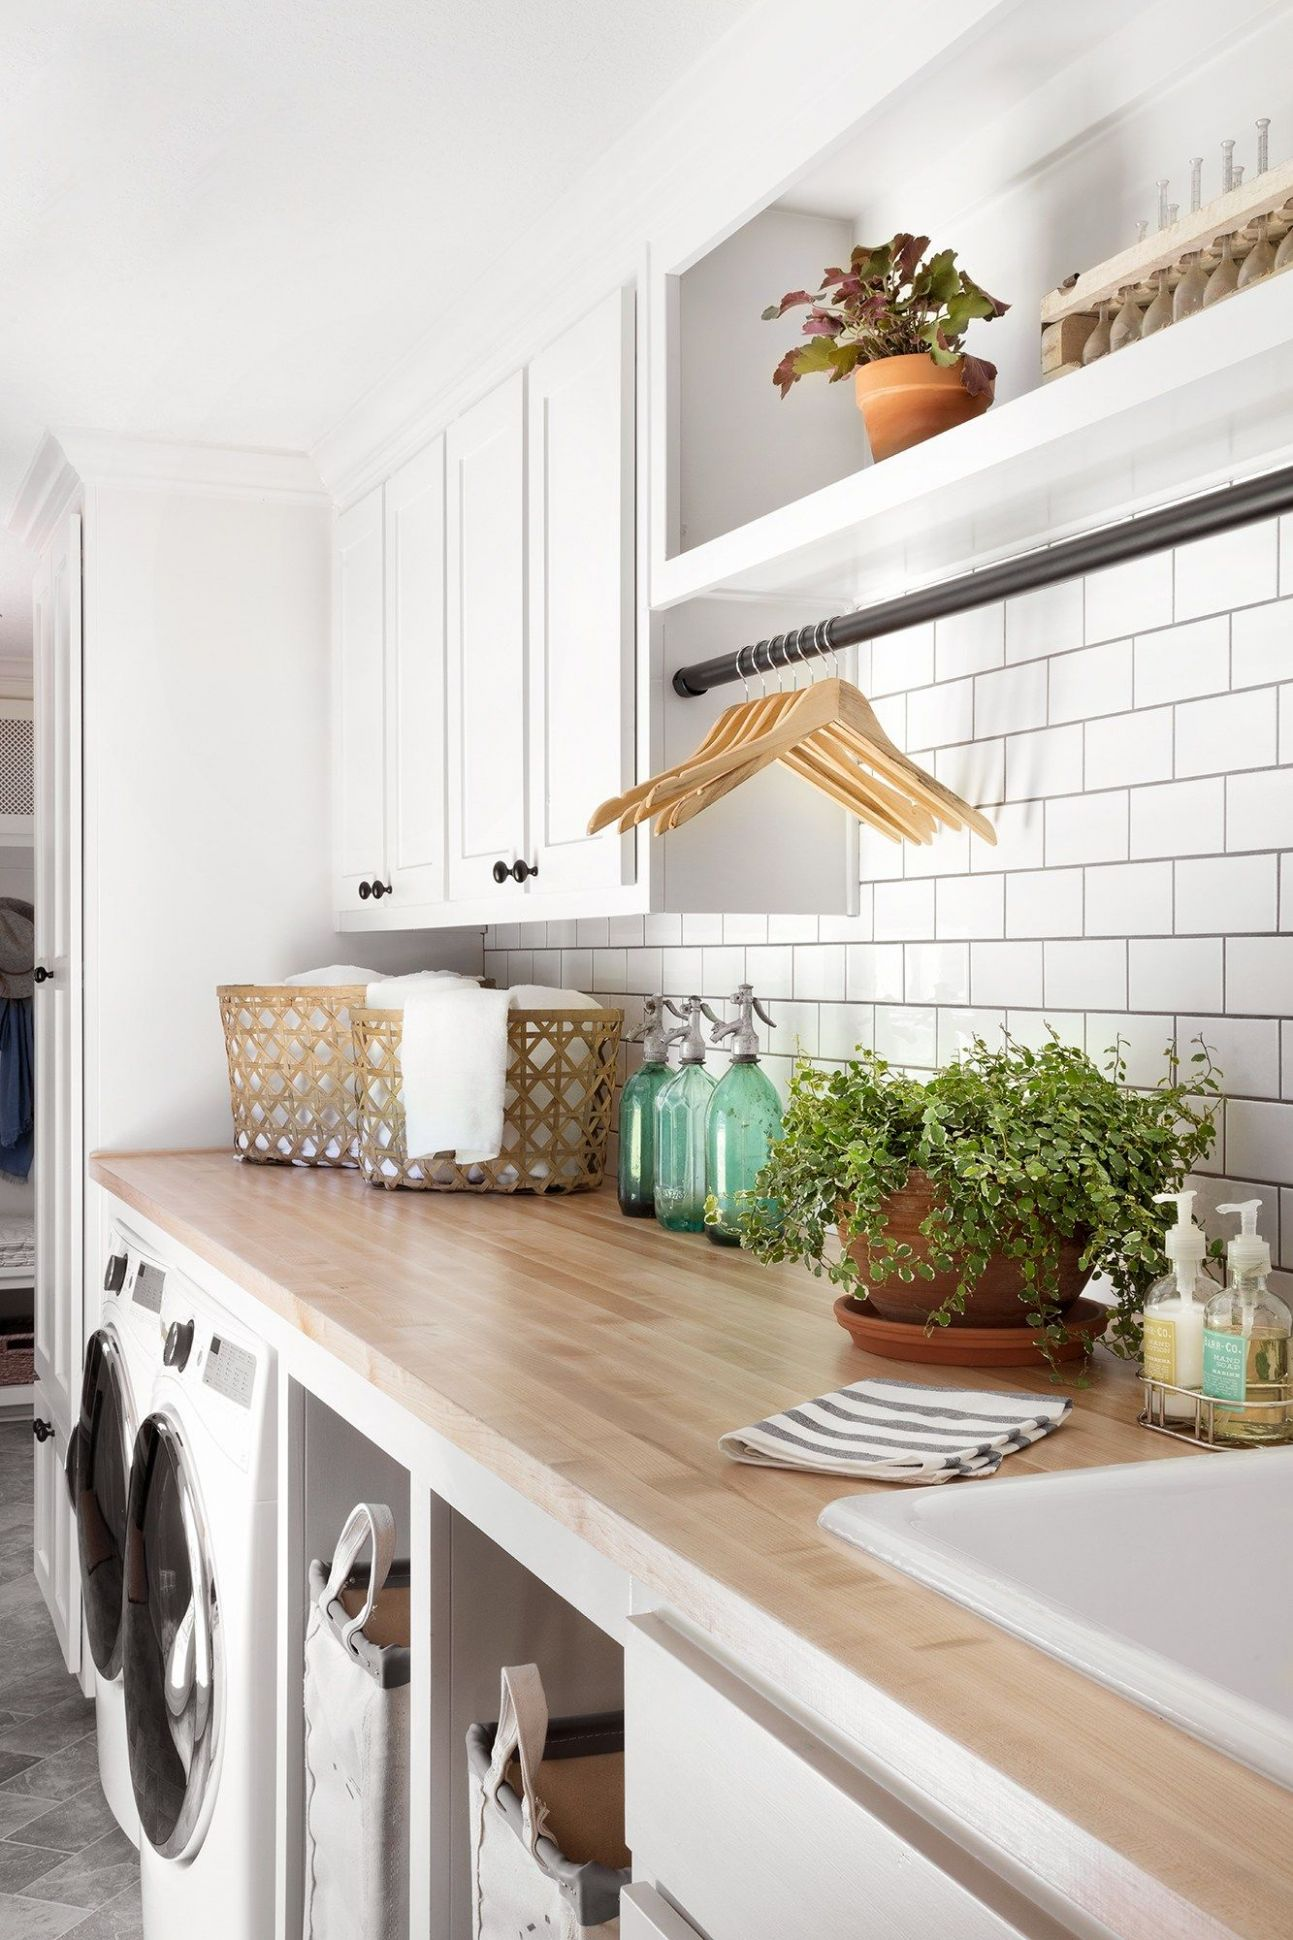 Episode 10: Season 10 (With images) | Modern laundry rooms, Farm ...